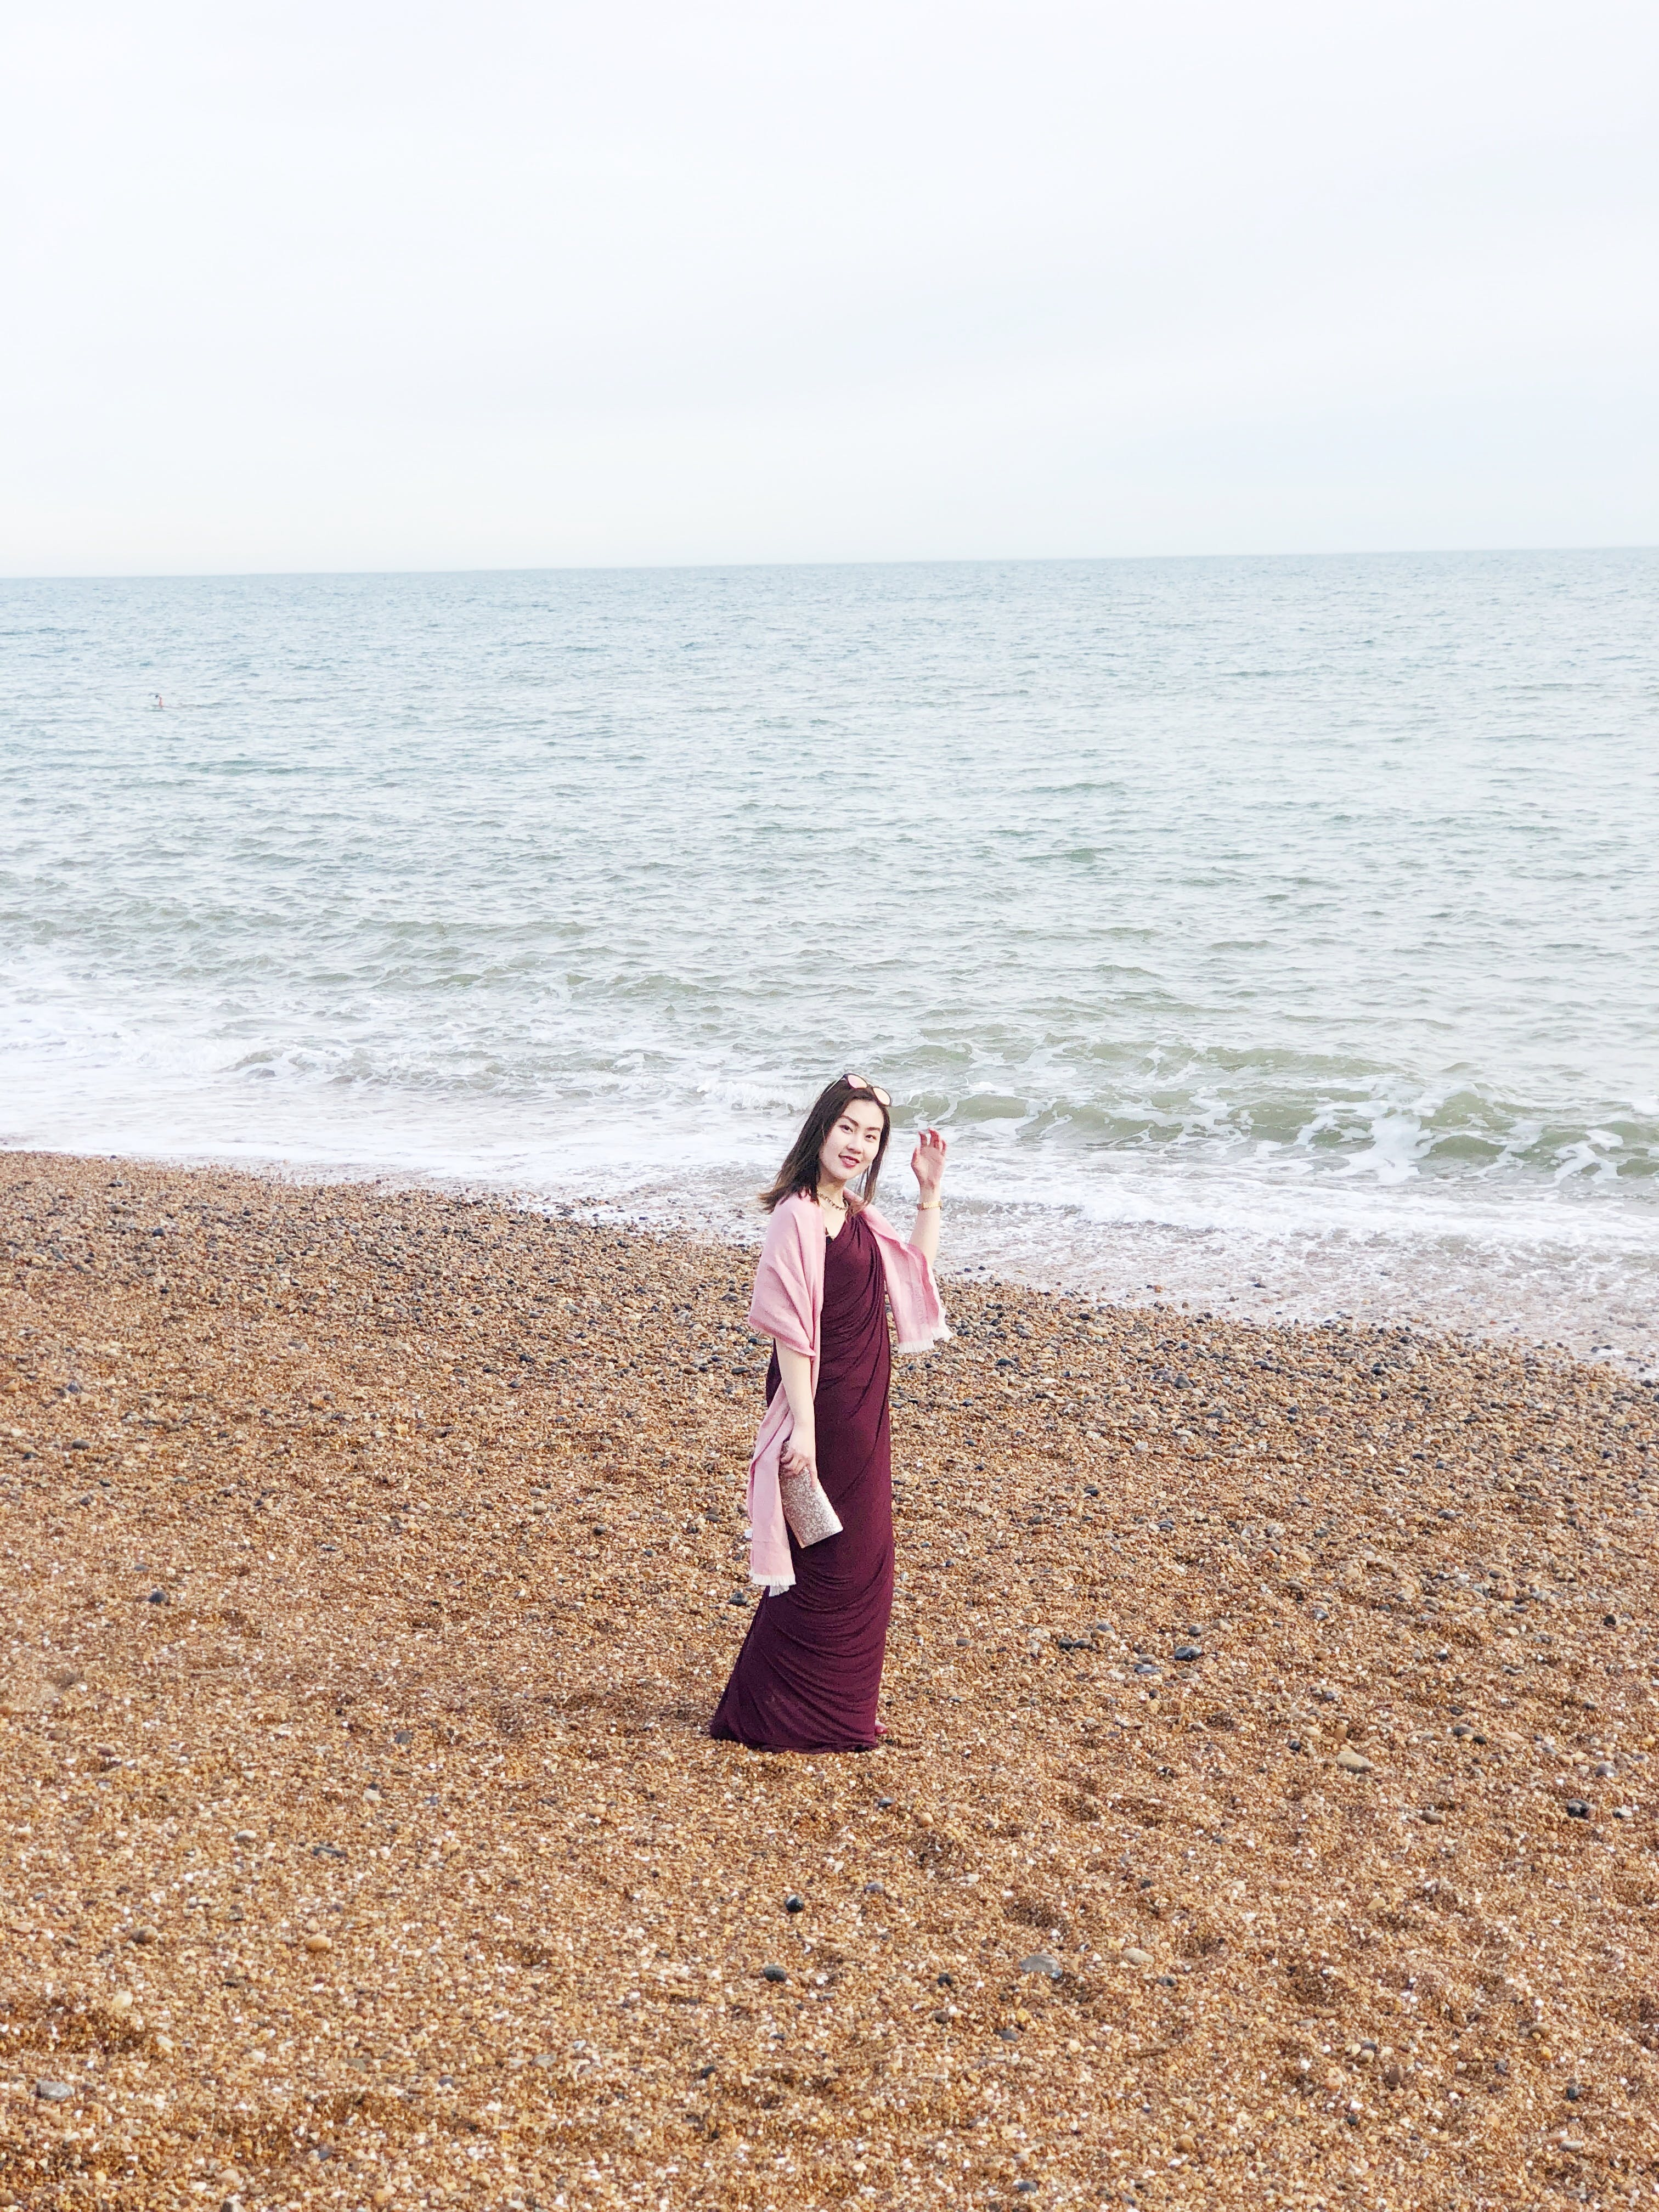 Woman Wearing Maroon Long Dress Near Seashore